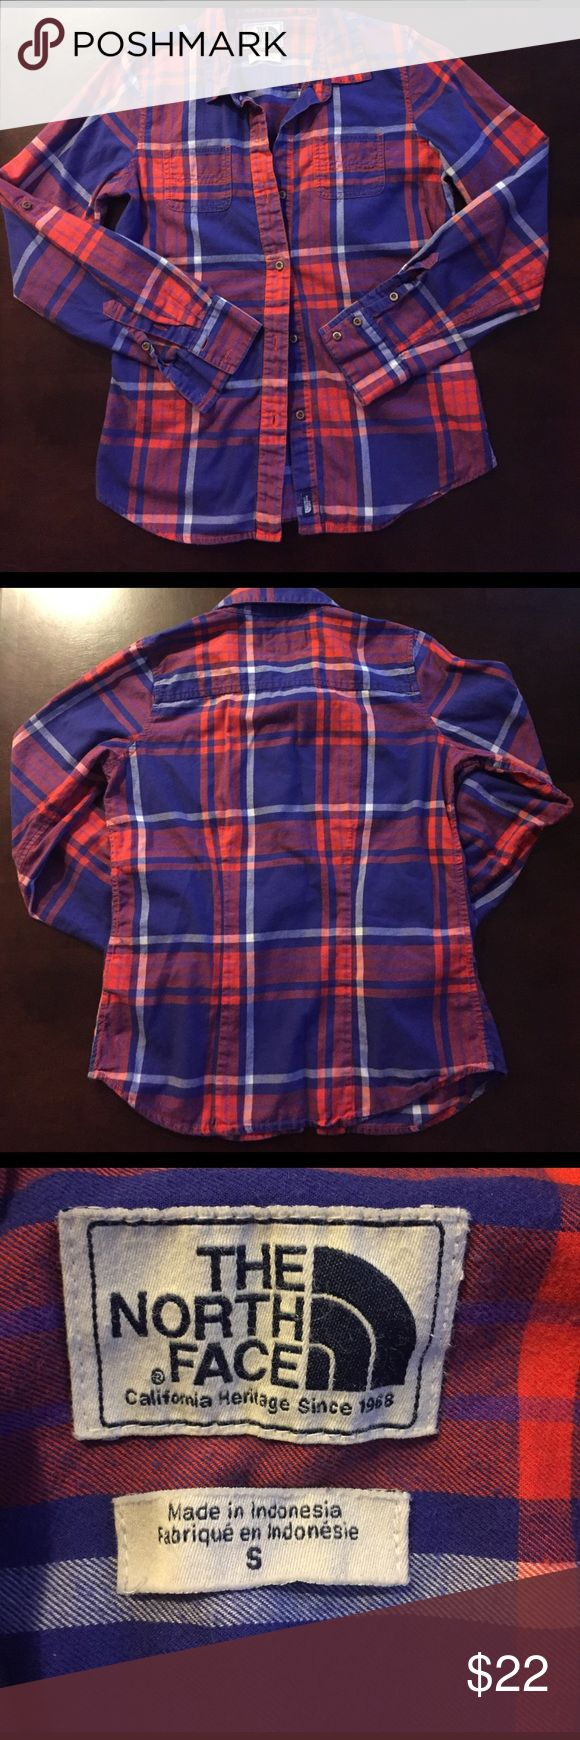 The North Face Ladies Plaid Flannel Shirt Ladies Plaid button-up fitted flannel shirt.  The fabric features a beautiful red, white, and blue Plaid that is perfect for patriotic occasions!  The fabric is 100% cotton and has that comfortable feel of your favorite shirt.  Has wooden buttons in the front and on the cuffs.  The sleeves can be rolled up and secured in place with a tab and button fastener.  Worn and washed a few times. The North Face Tops Button Down Shirts